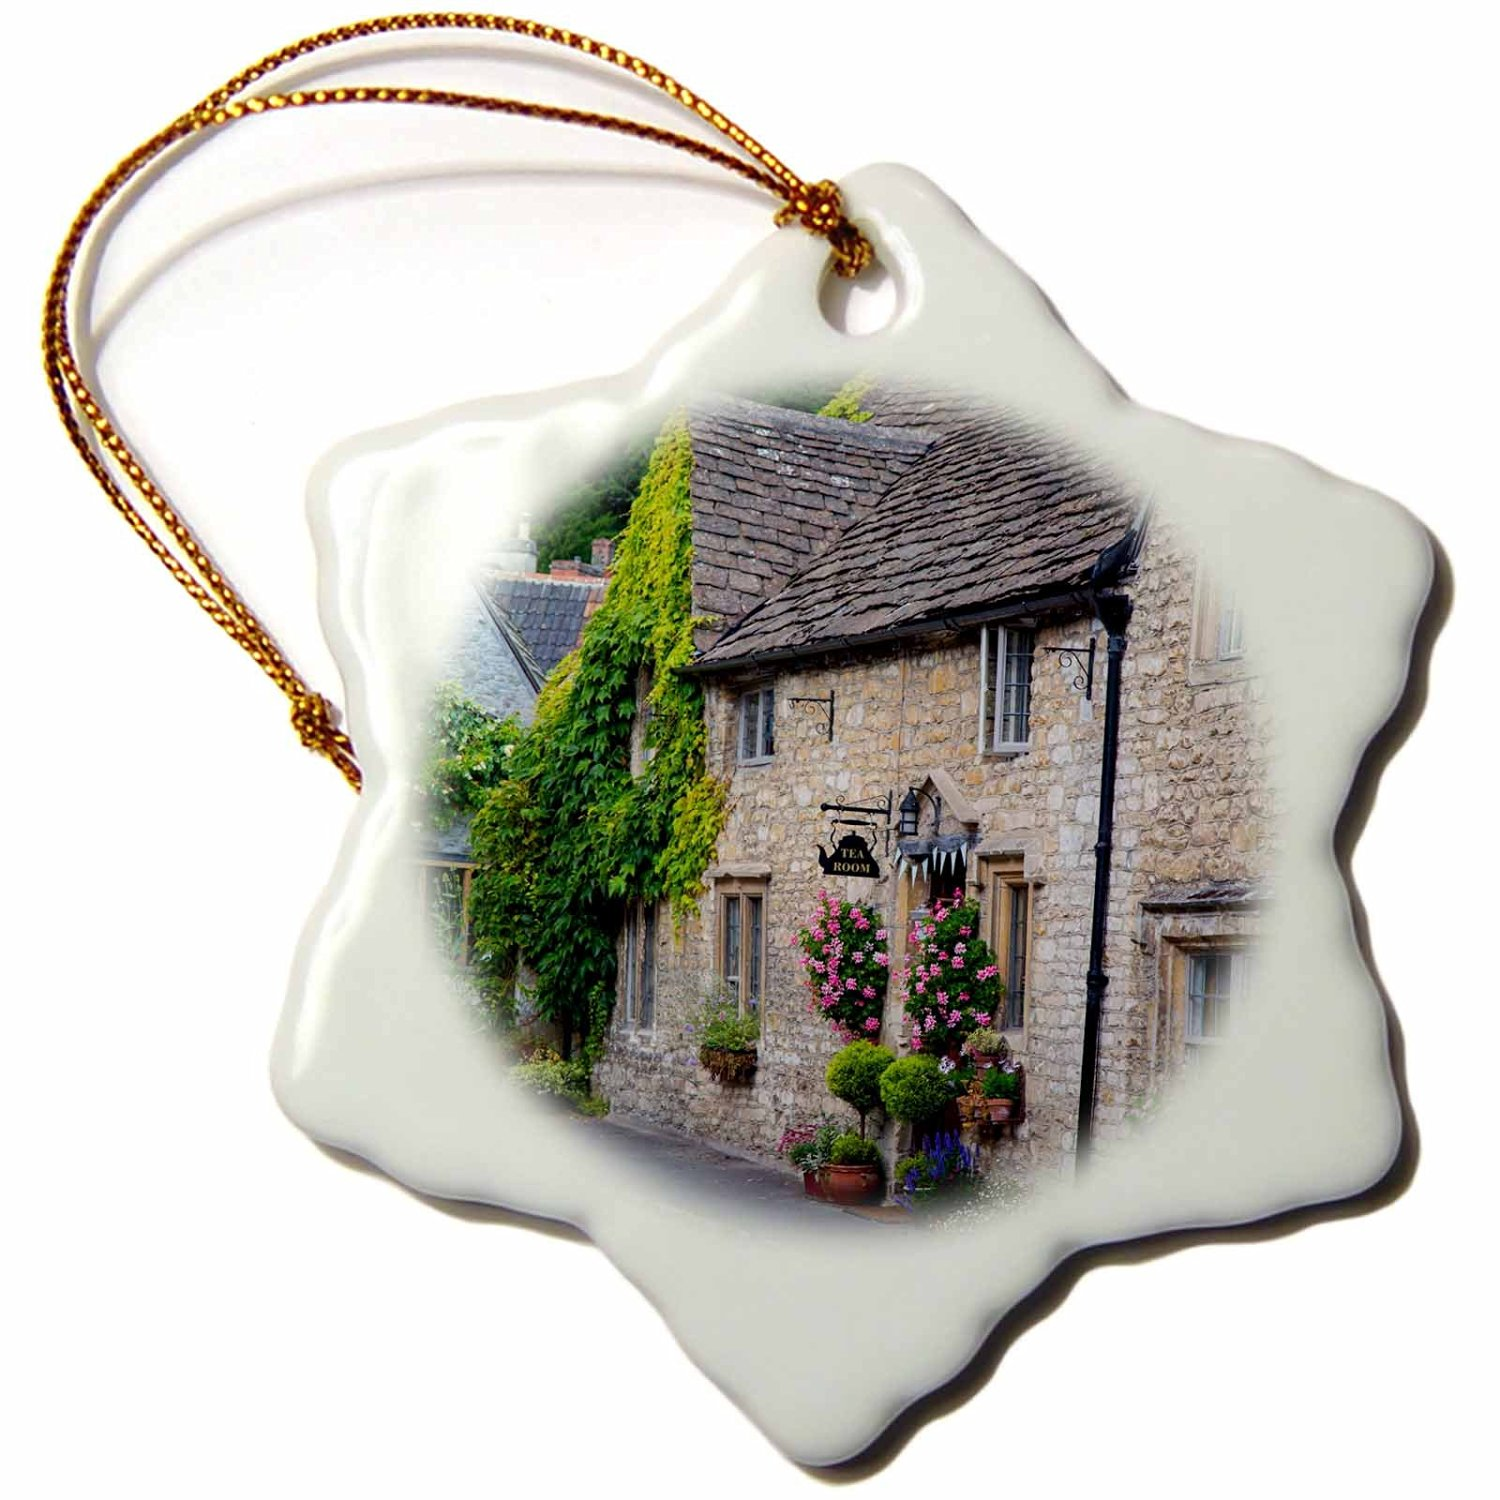 Danita Delimont - Houses - High Street, Castle Combe, the Cotswolds, Wiltshire, England - 3 inch Snowflake Porcelain Ornament (orn_228052_1)